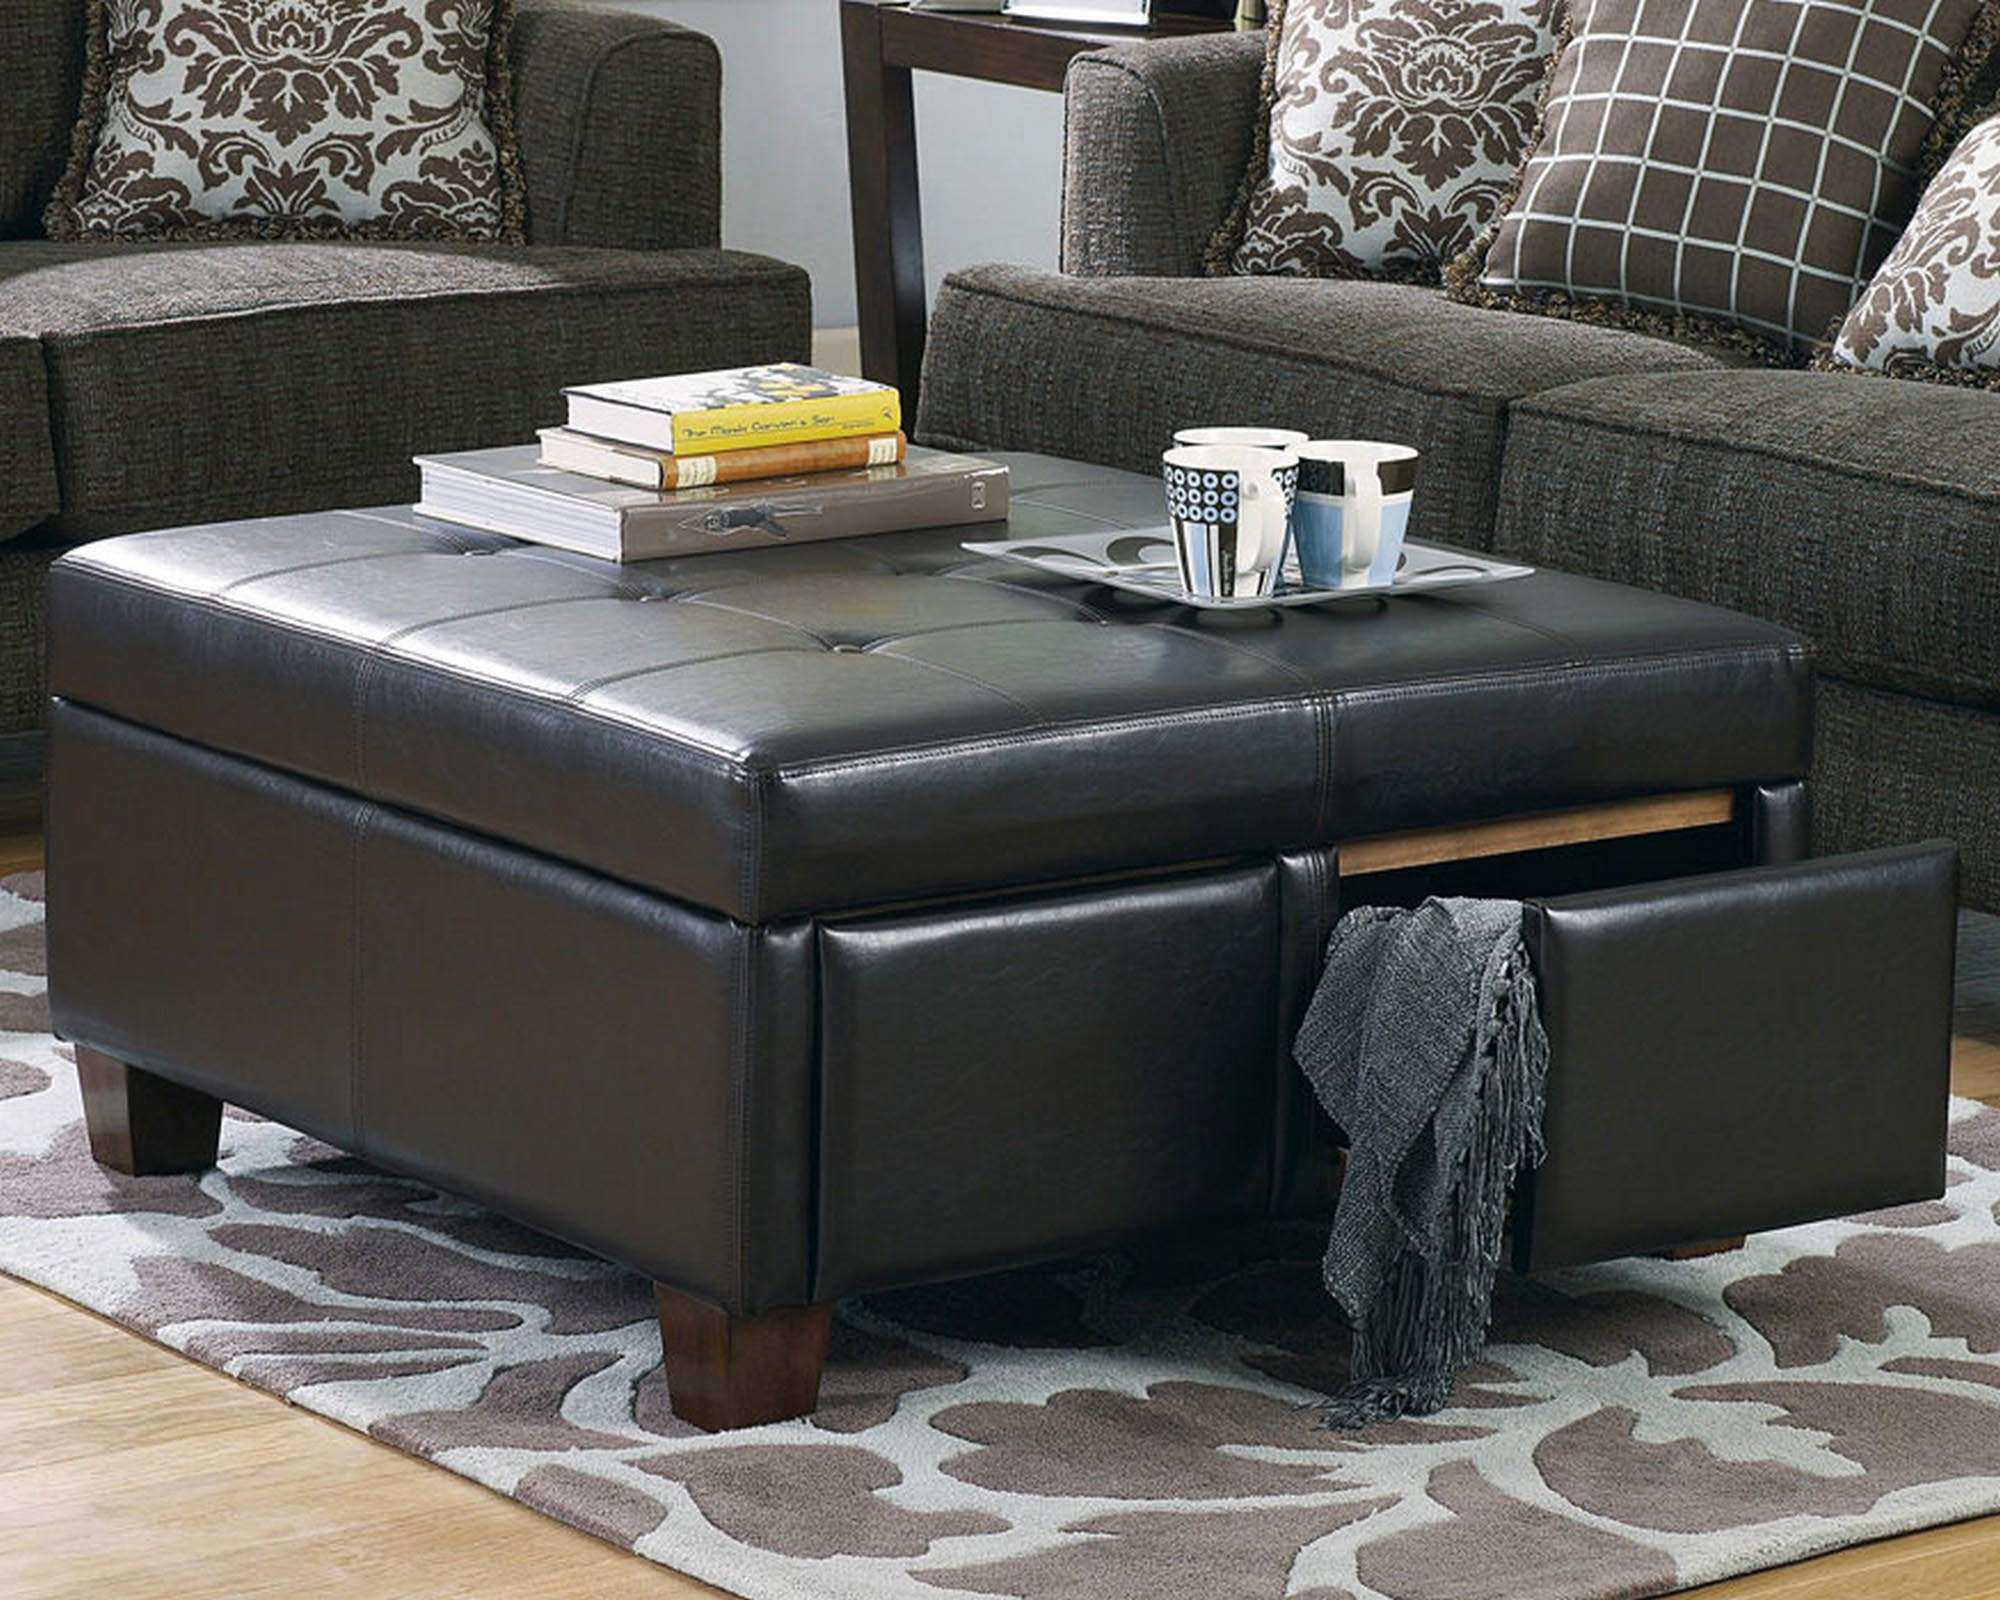 Ottoman Coffee Table Black Black Leather Ottoman Coffee Table Coffee Table Design Ideas